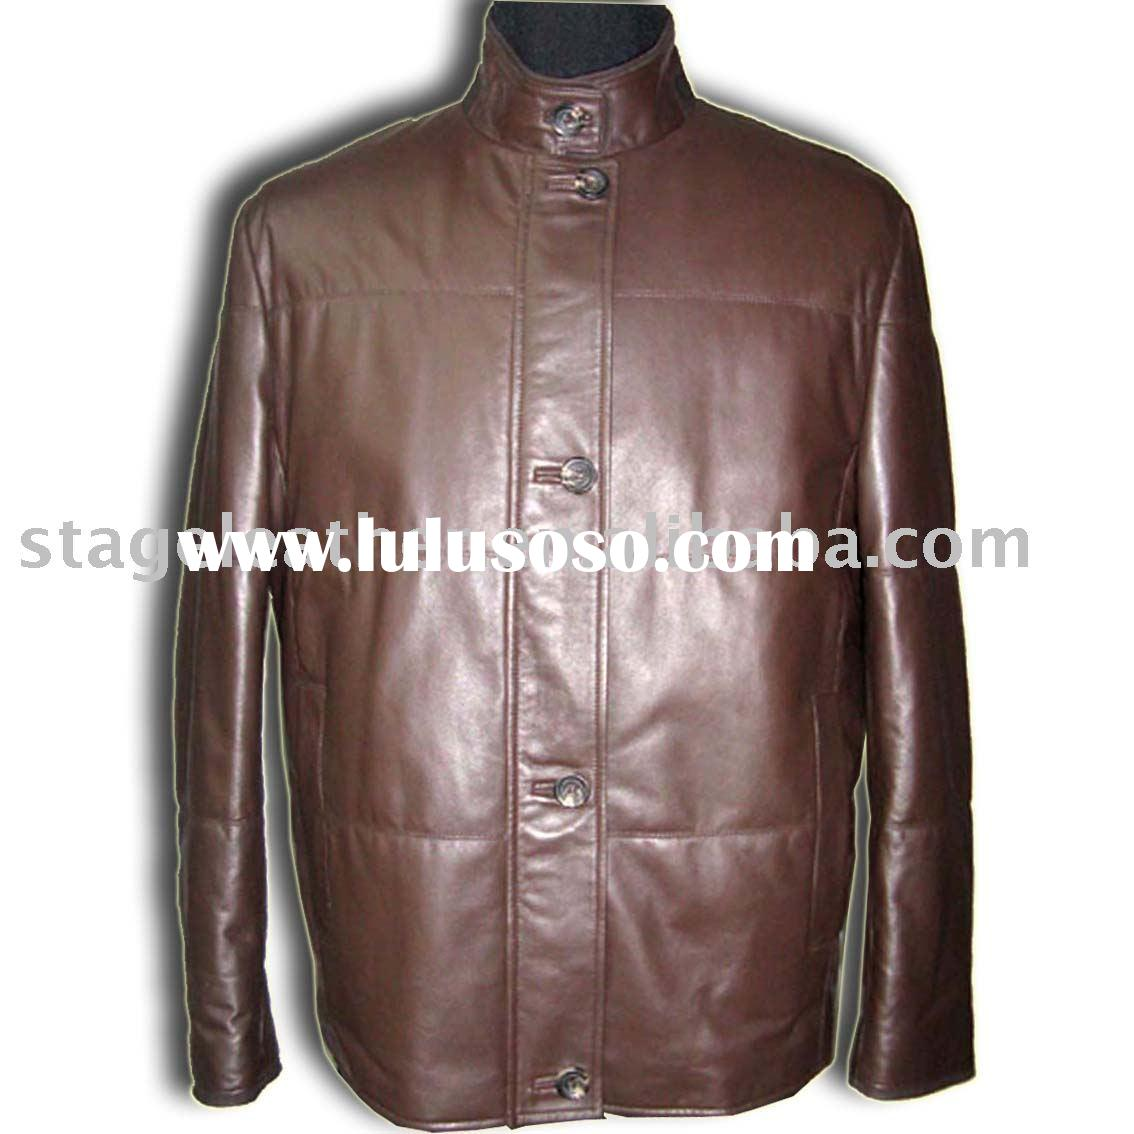 leather jacket snap button repair, leather jacket snap button repair